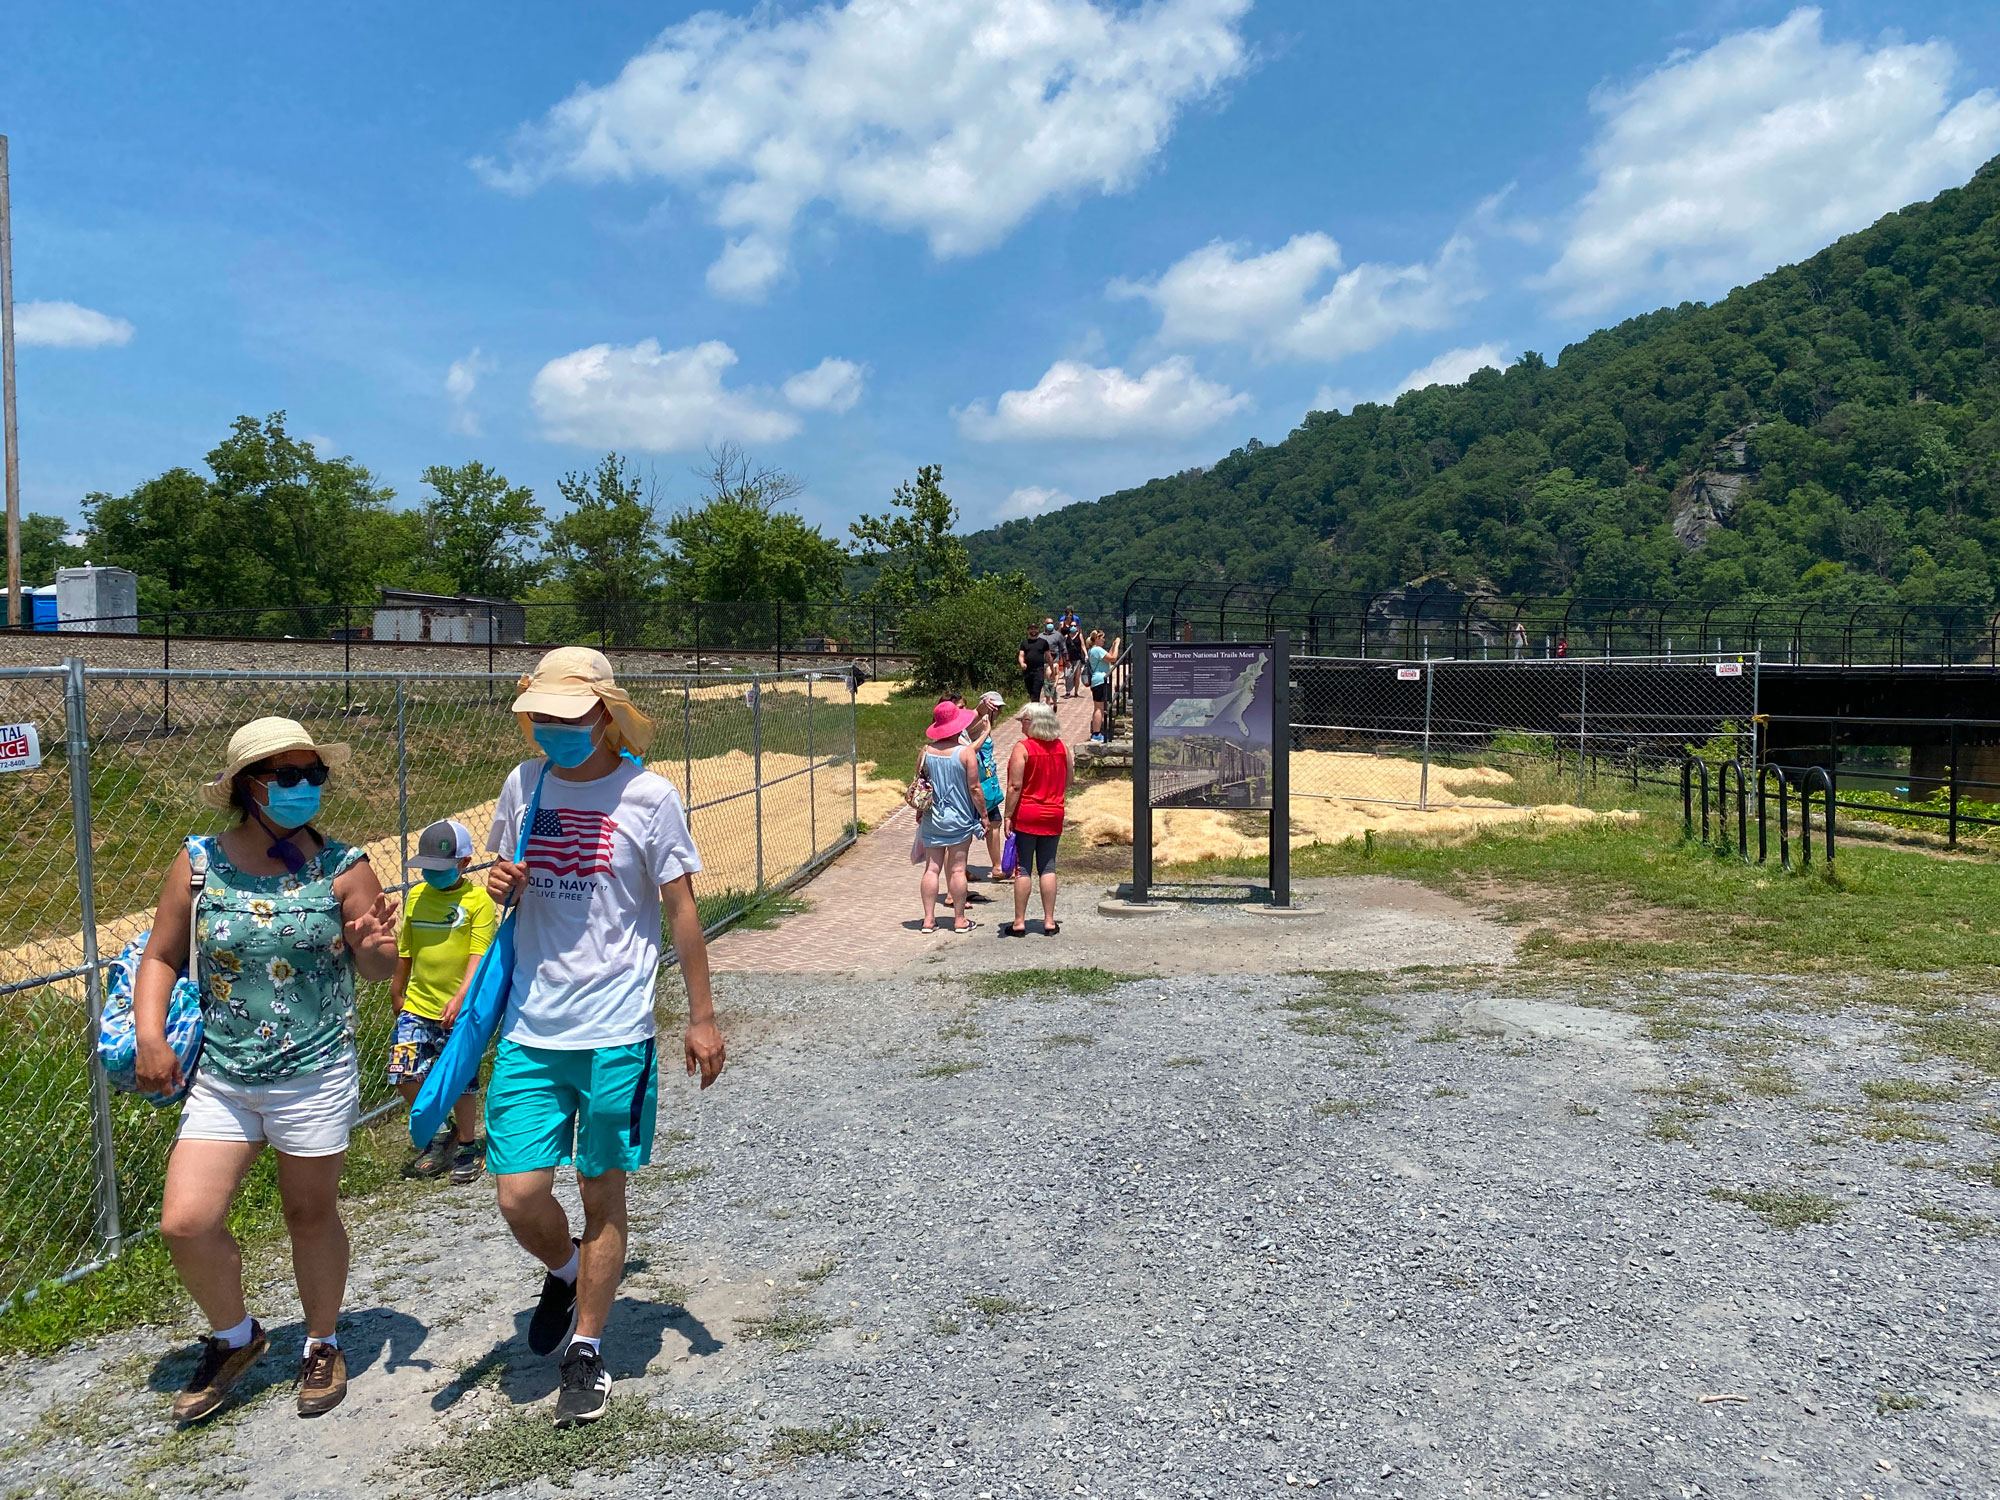 Tourists visit the Harpers Ferry Historial Park in Harpers Ferry, West Virginia, on July 3.